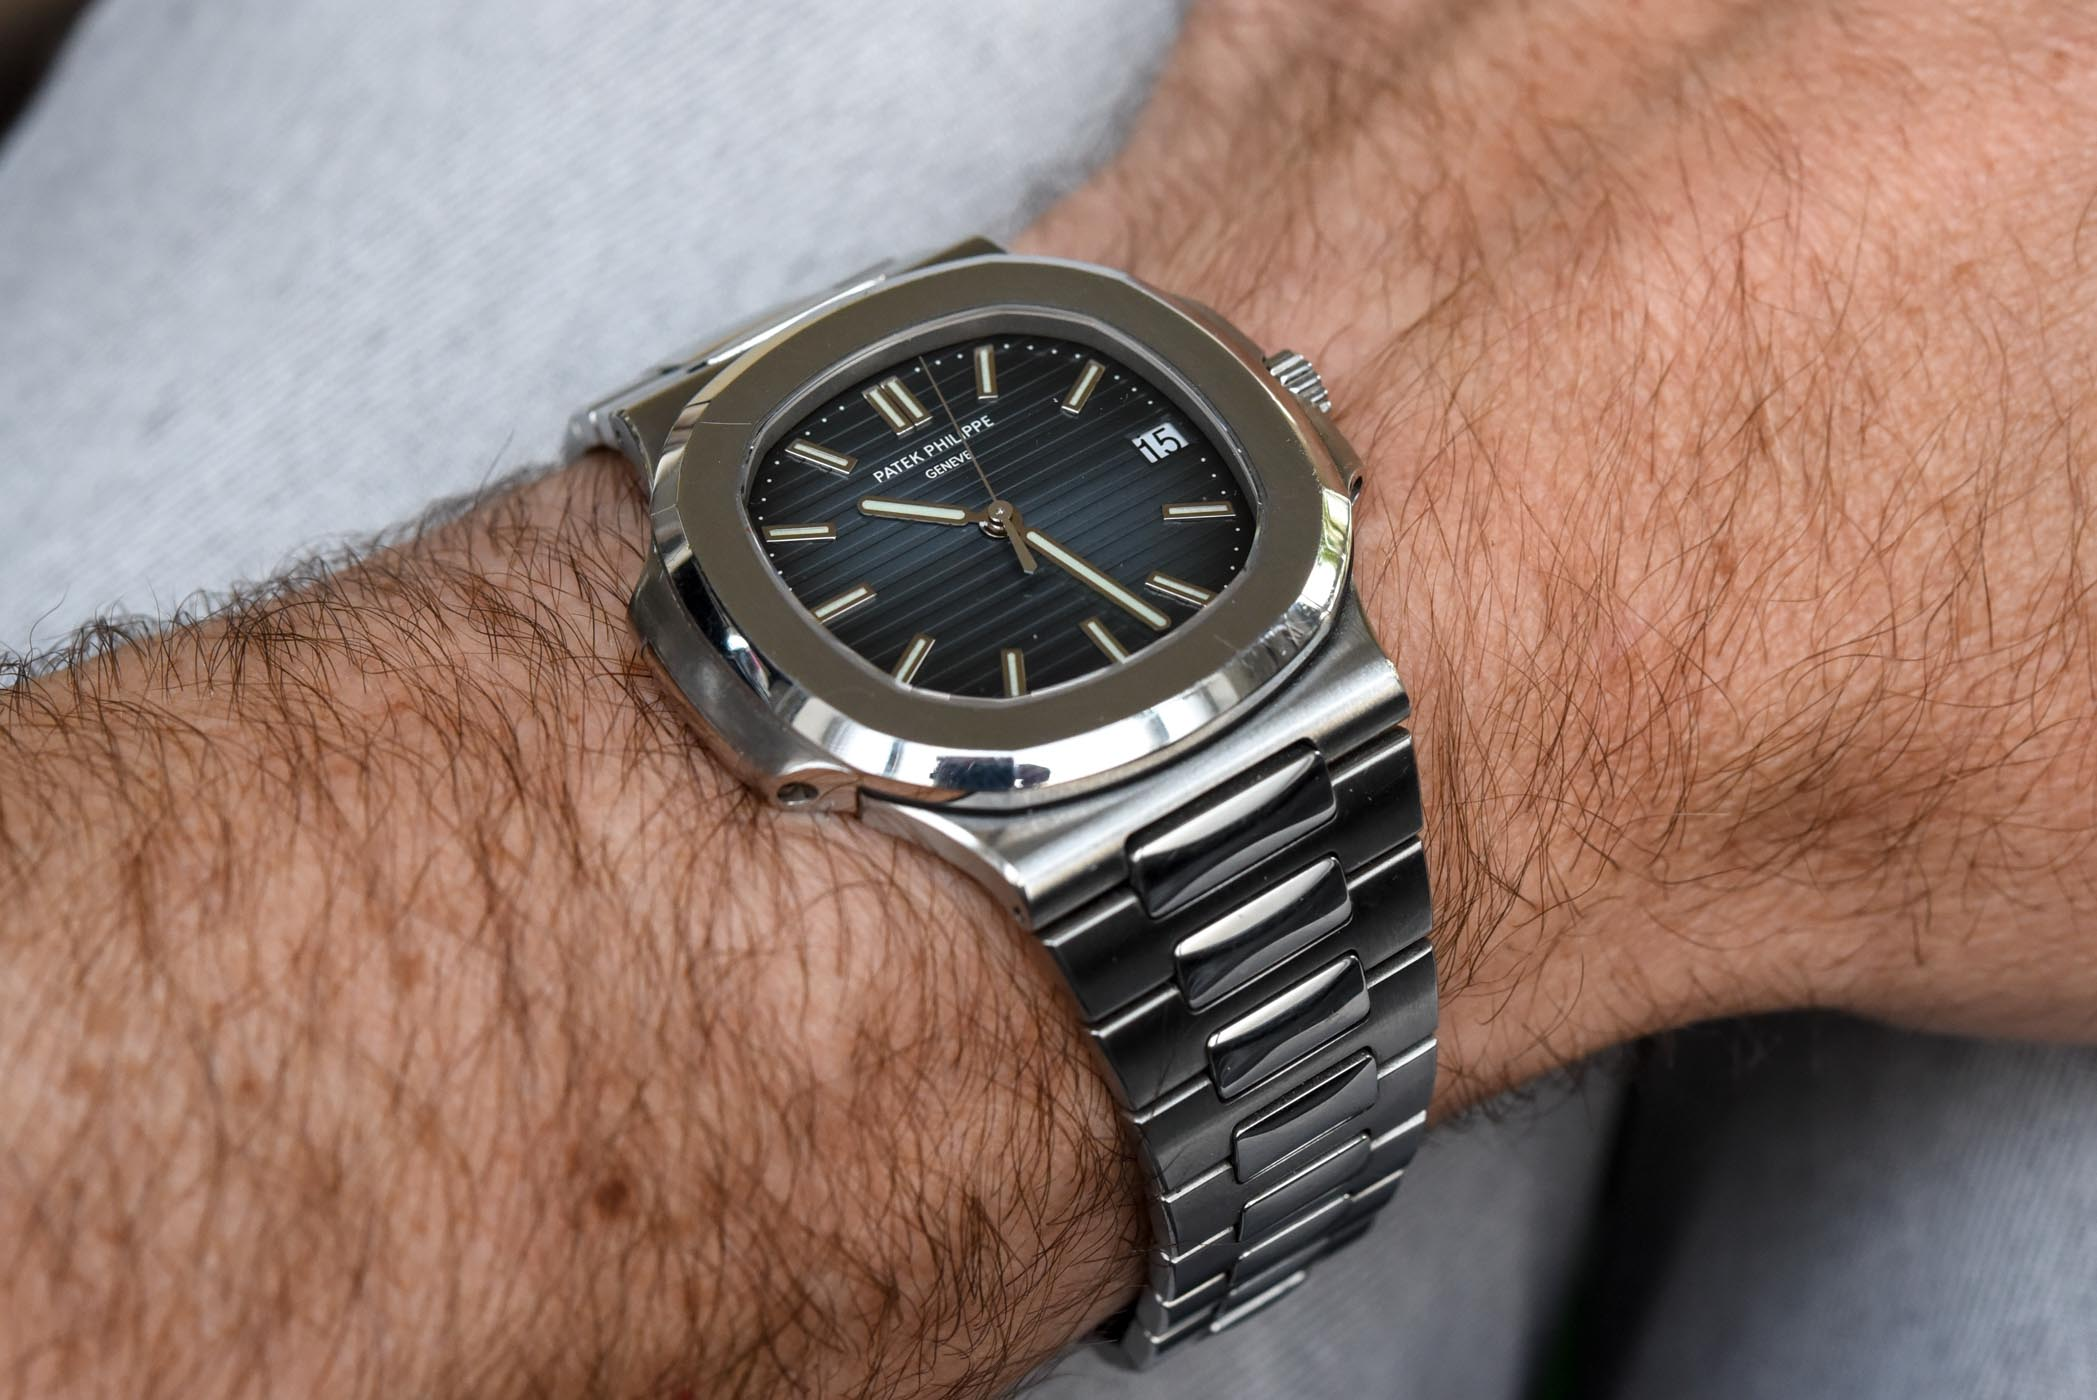 Thoughts On The Patek Philippe Nautilus Ref 5711 And Why